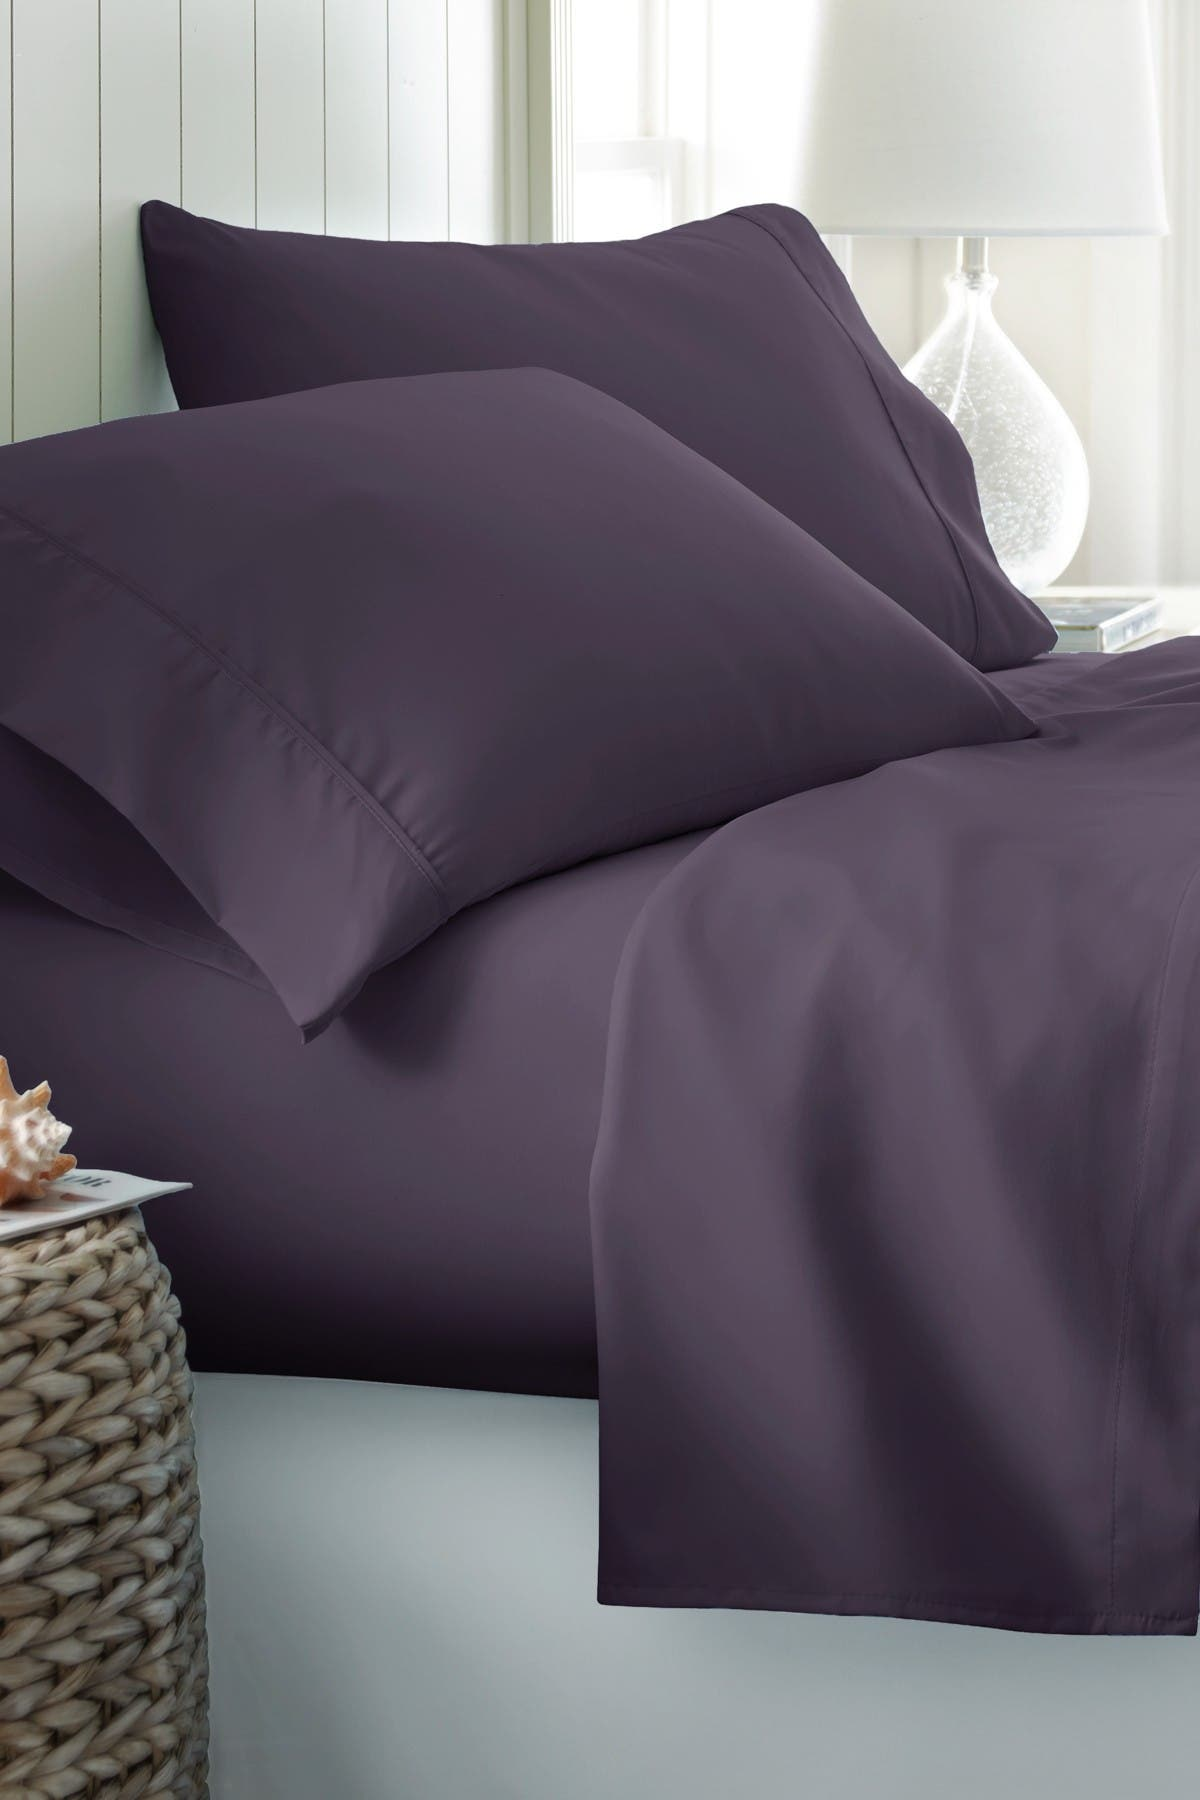 Image of IENJOY HOME Twin Hotel Collection Premium Ultra Soft 3-Piece Bed Sheet Set - Purple